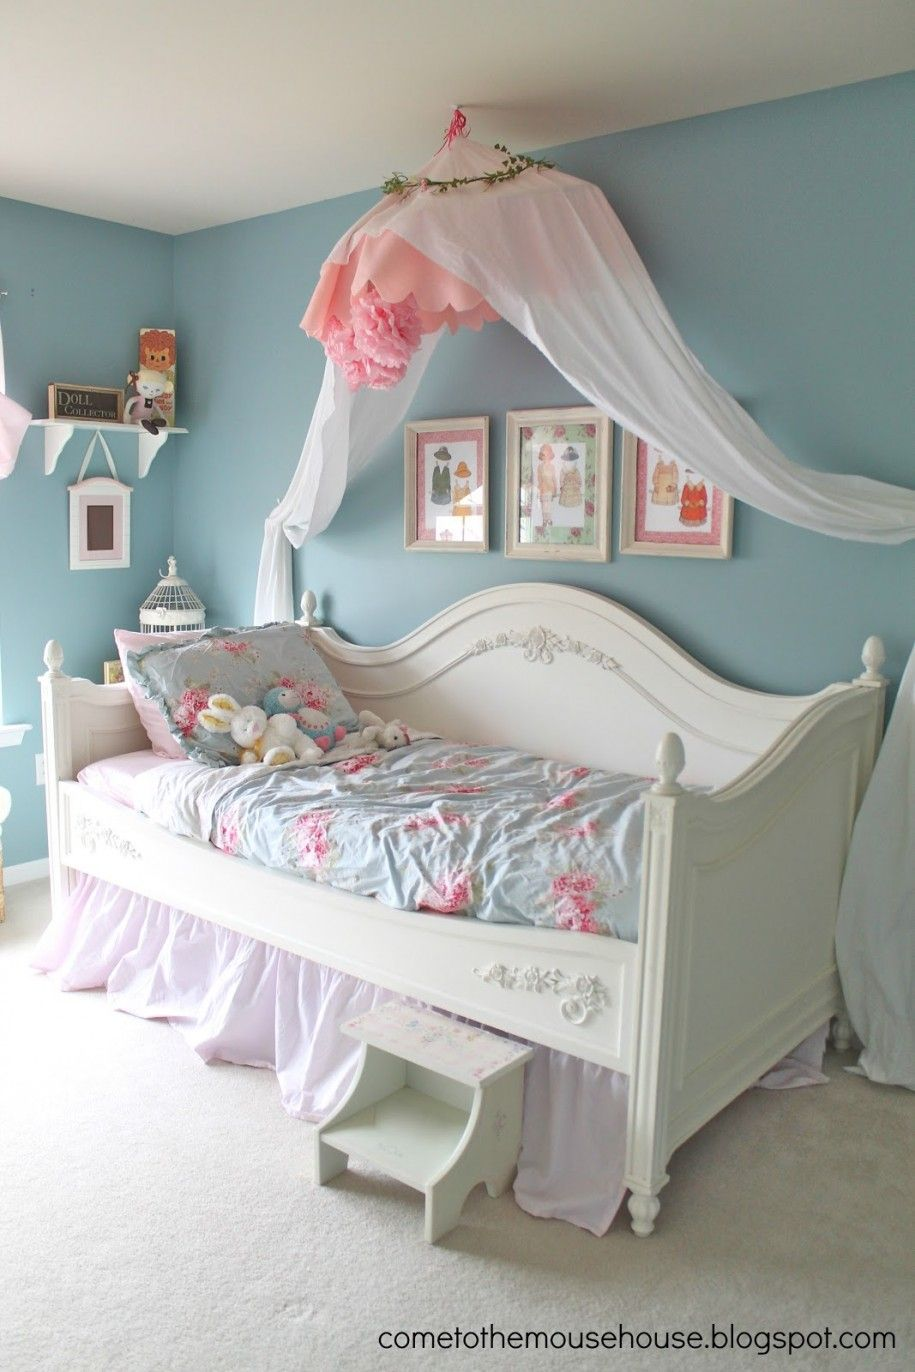 Girls bed canopy ideas - Charming And Romantic Canopy Bed Ideas Girls Romantic Canopy Bed With White And Pink Ideas